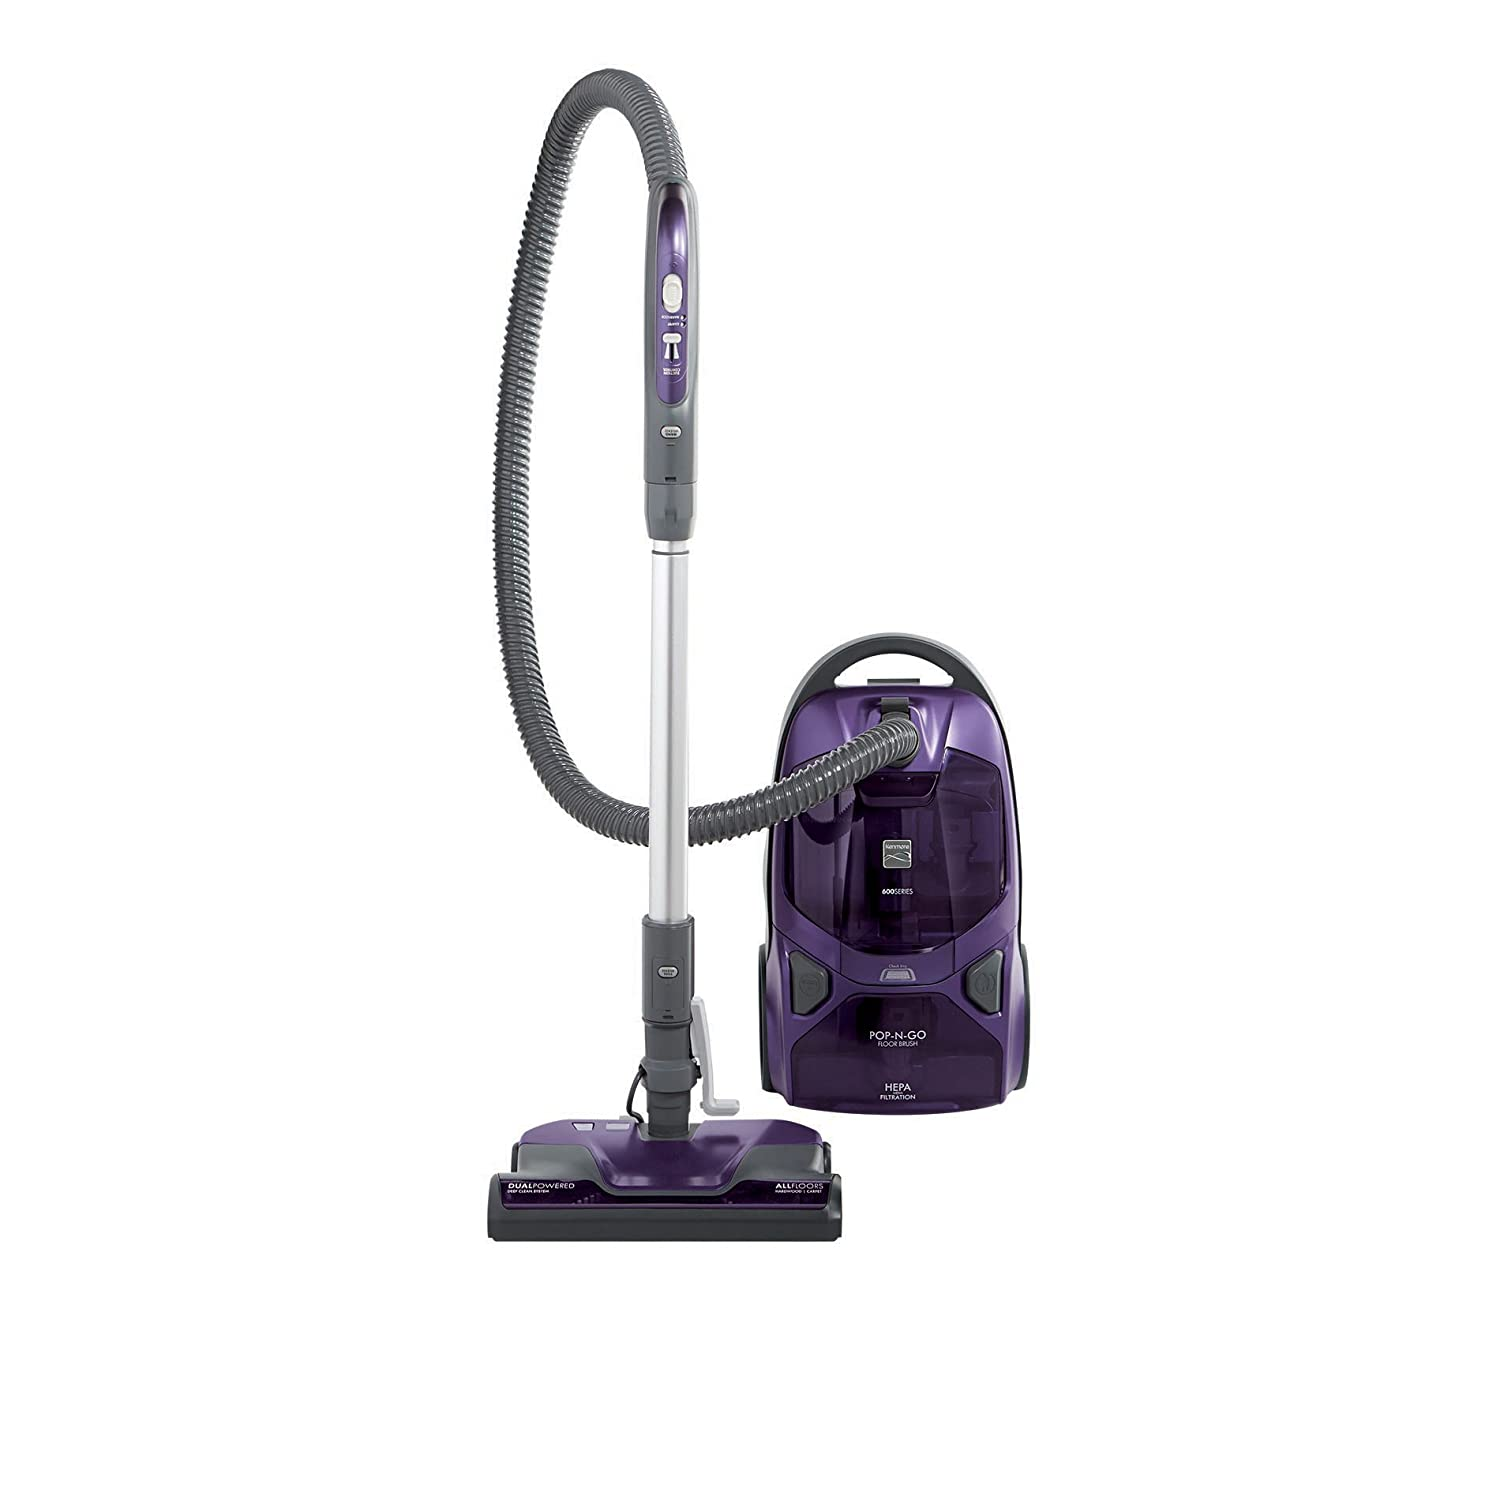 Kenmore 81614 Pet Friendly Lightweight Bagged Canister Vacuum with Pet PowerMate HEPA